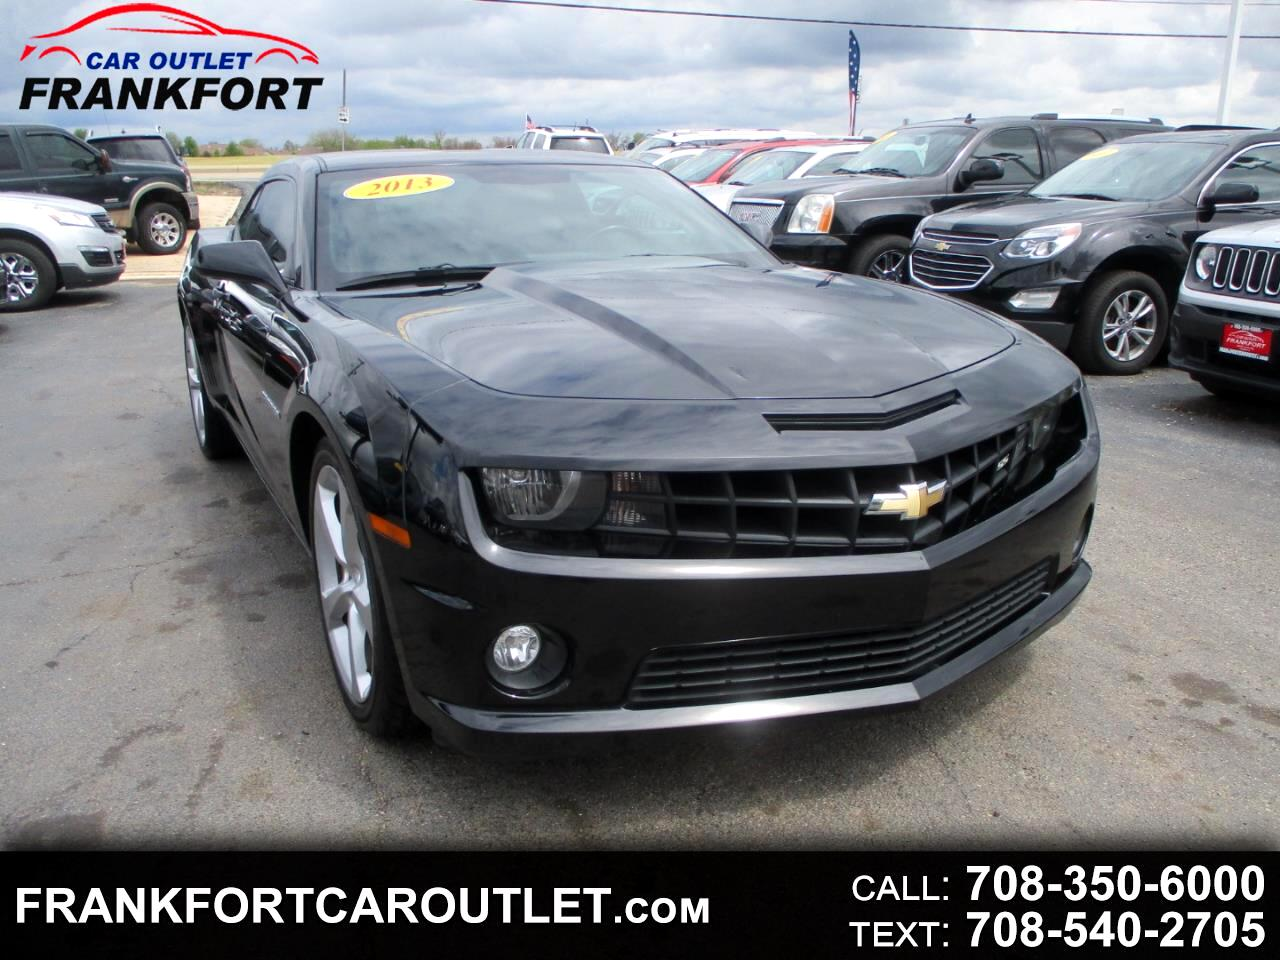 Chevrolet Camaro 2SS Coupe 2013